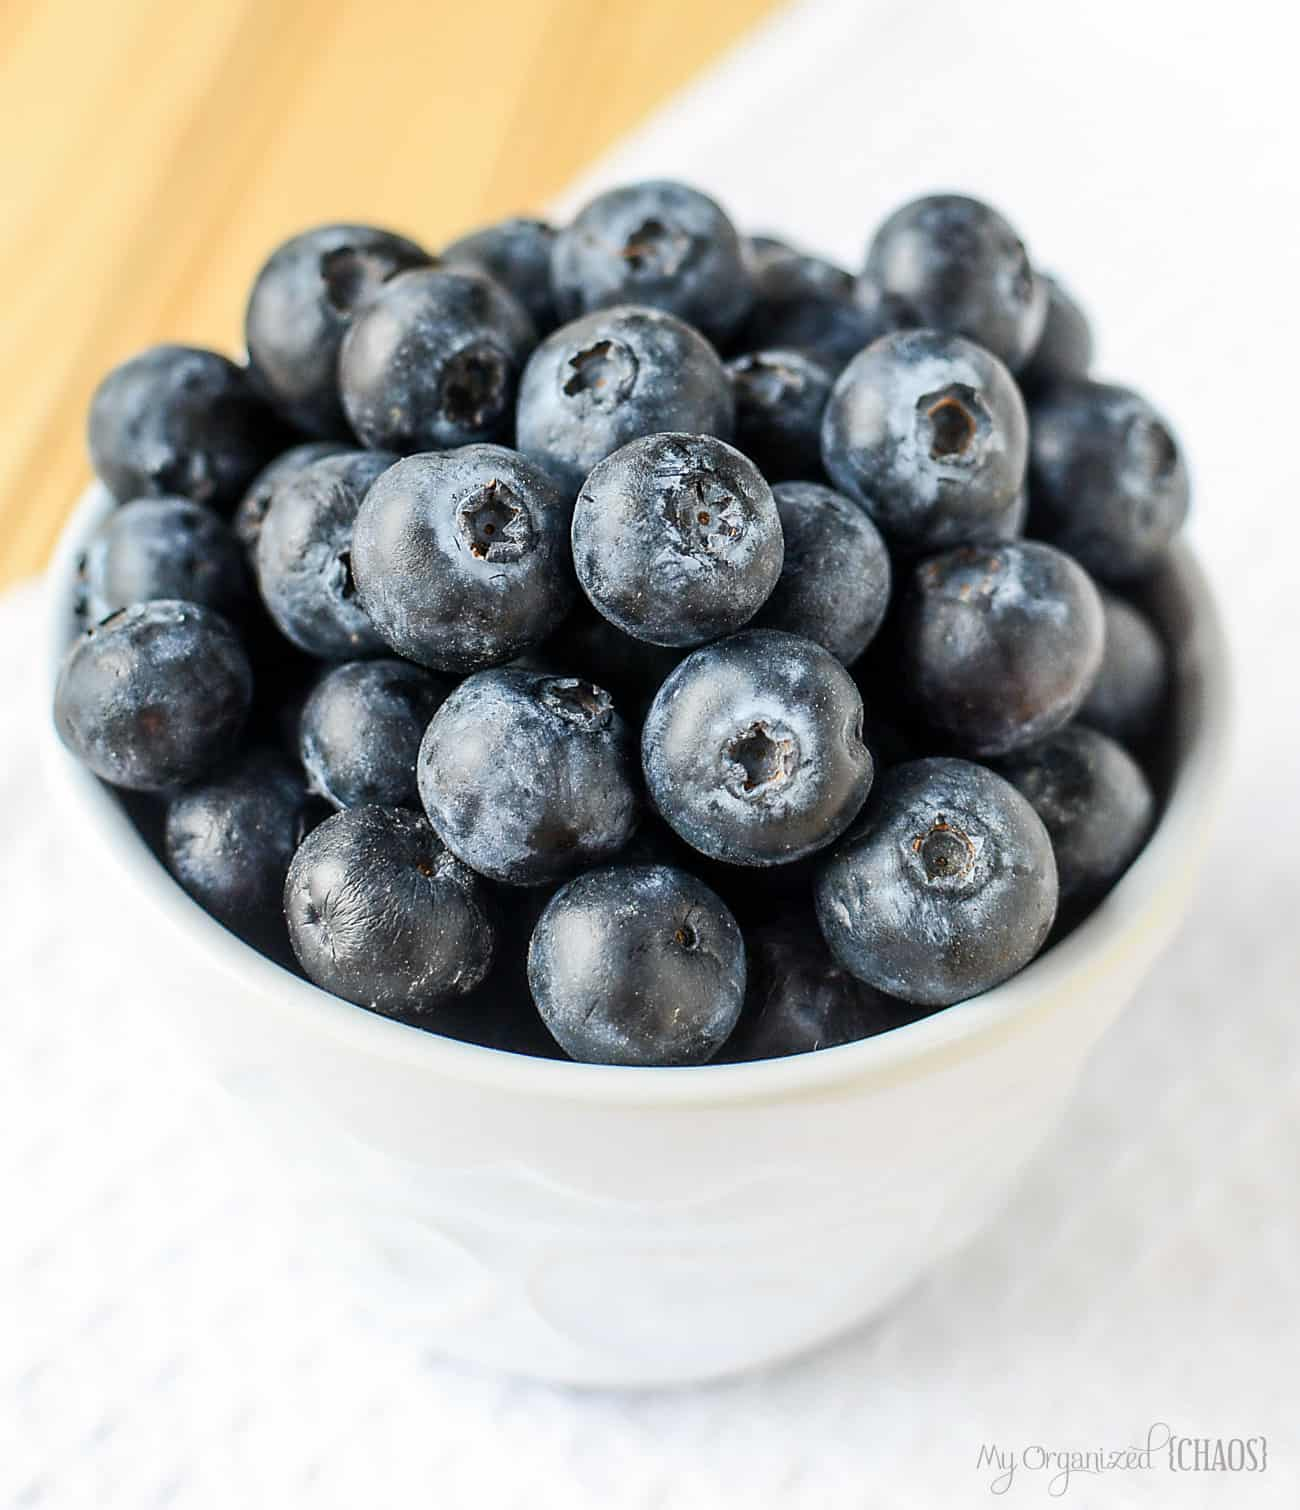 BC Blueberry dessert recipe